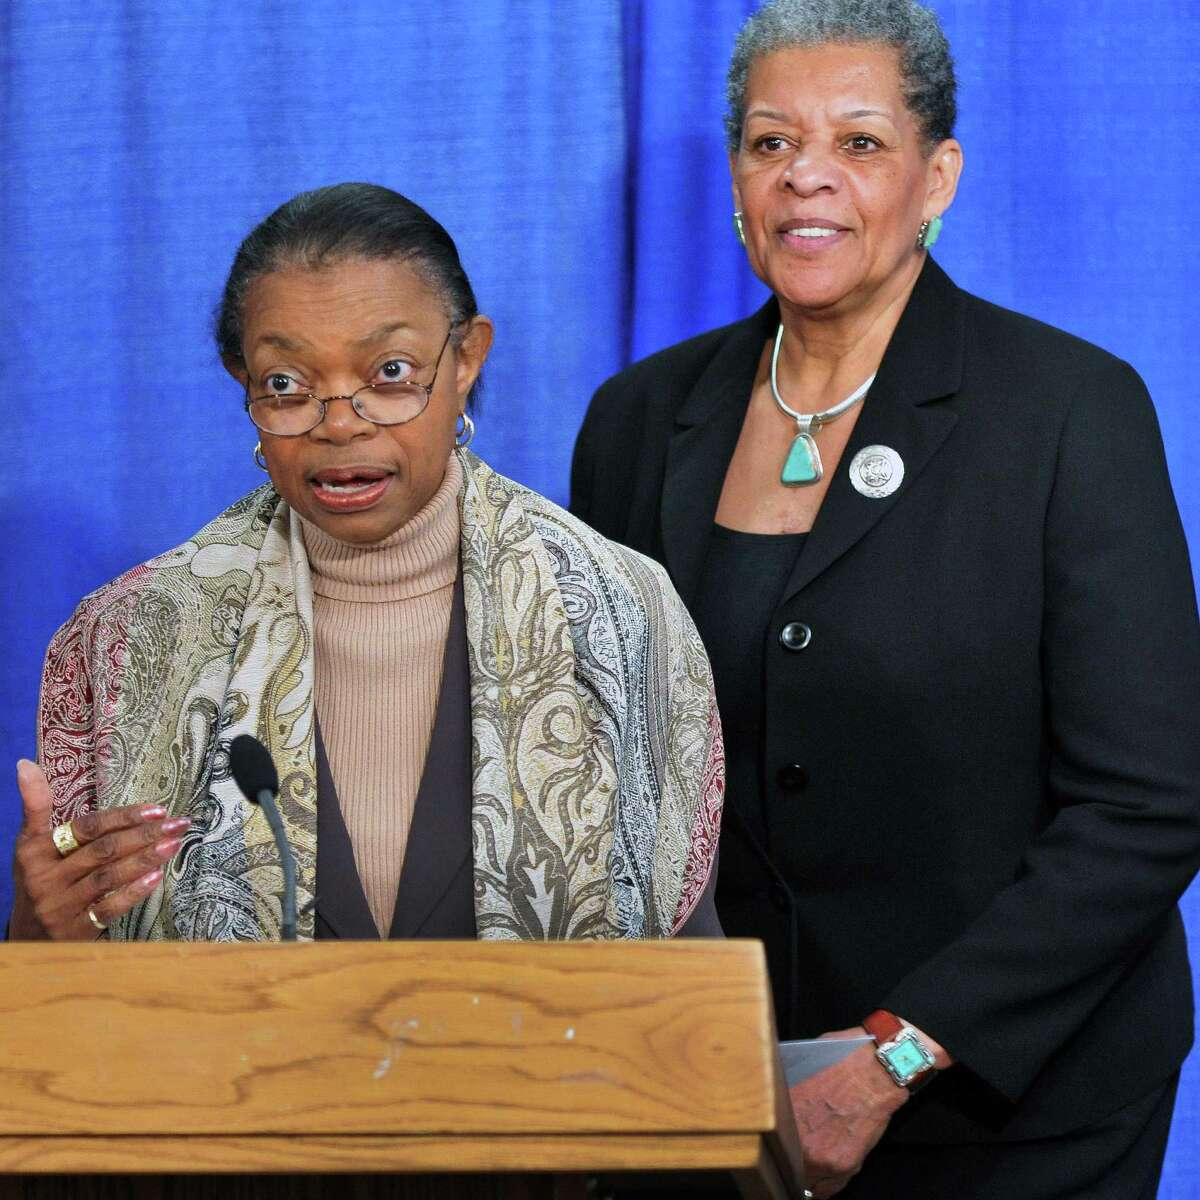 Senators Velmanette Mongomery, left, and Ruth Hassell-Thompson, right, during news conference Tuesday, April 17, 2012, at the Capitol in Albany, N.Y. (John Carl D'Annibale / Times Union archive)